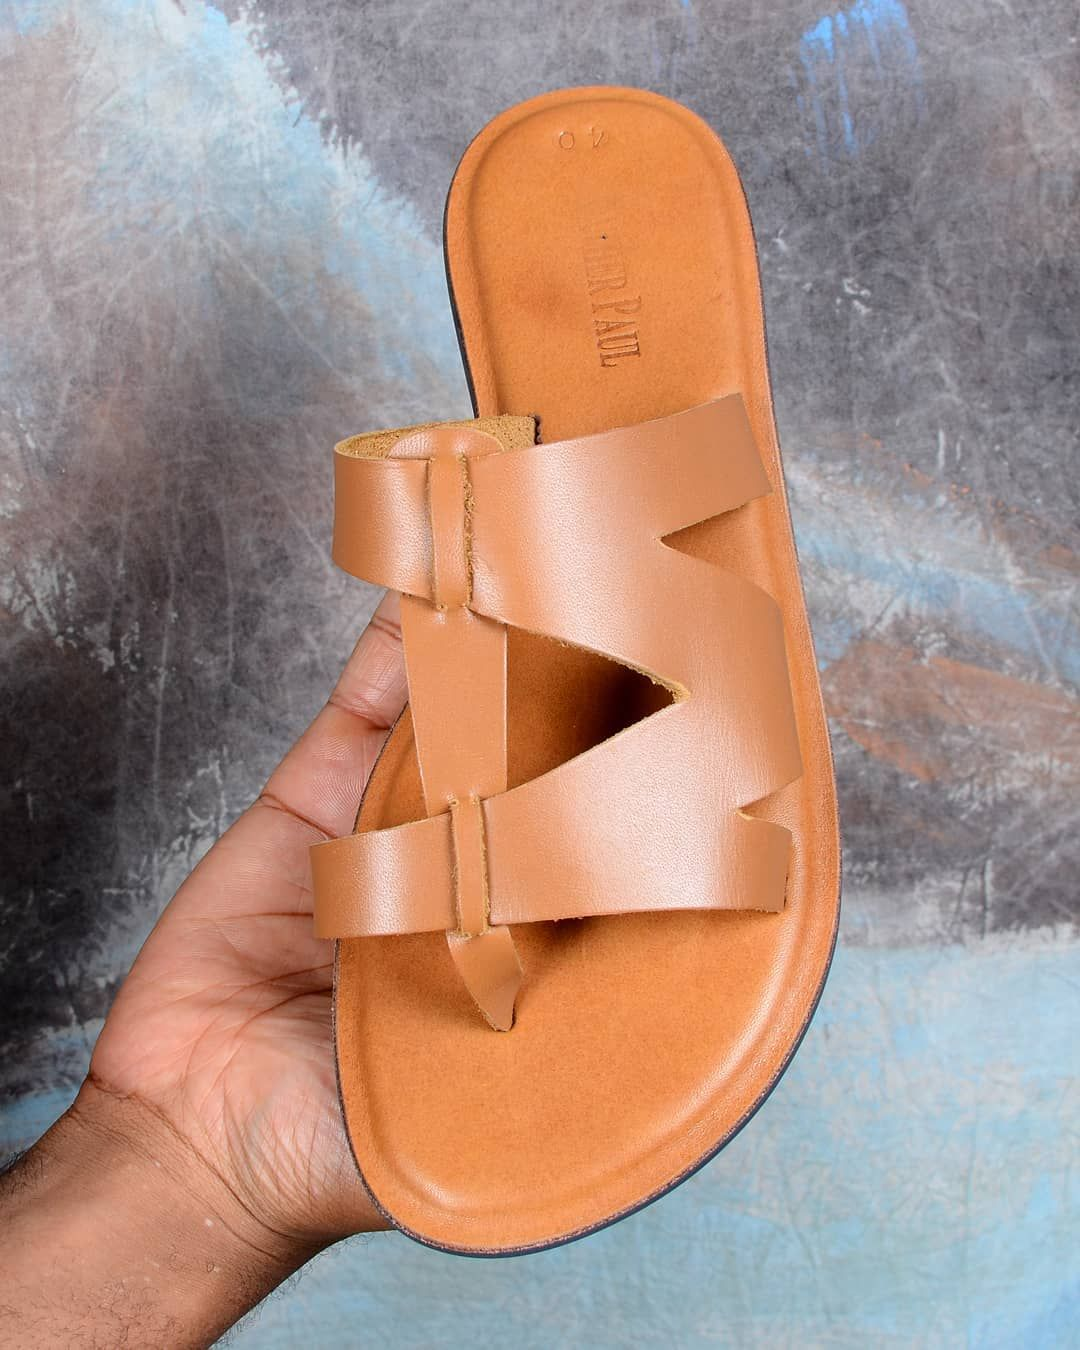 2019 New Men Closed Toe Sandals Beach Sand Flat Heel Shoes Summer Fashion Father